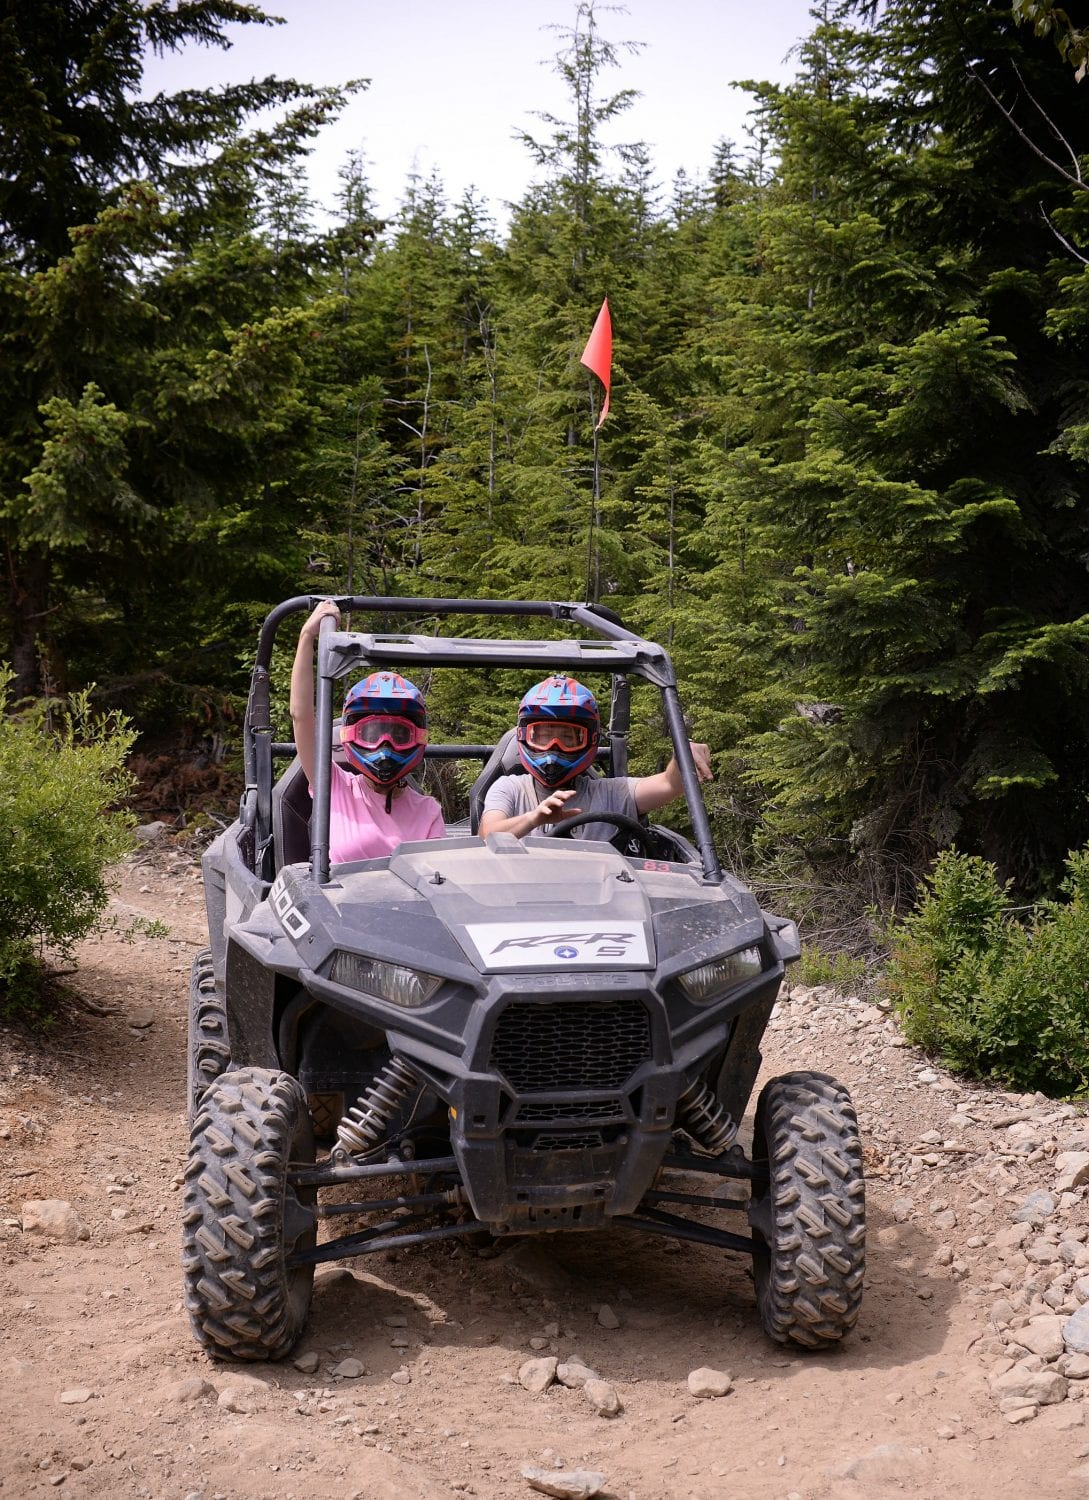 RZR. The Adventure Group